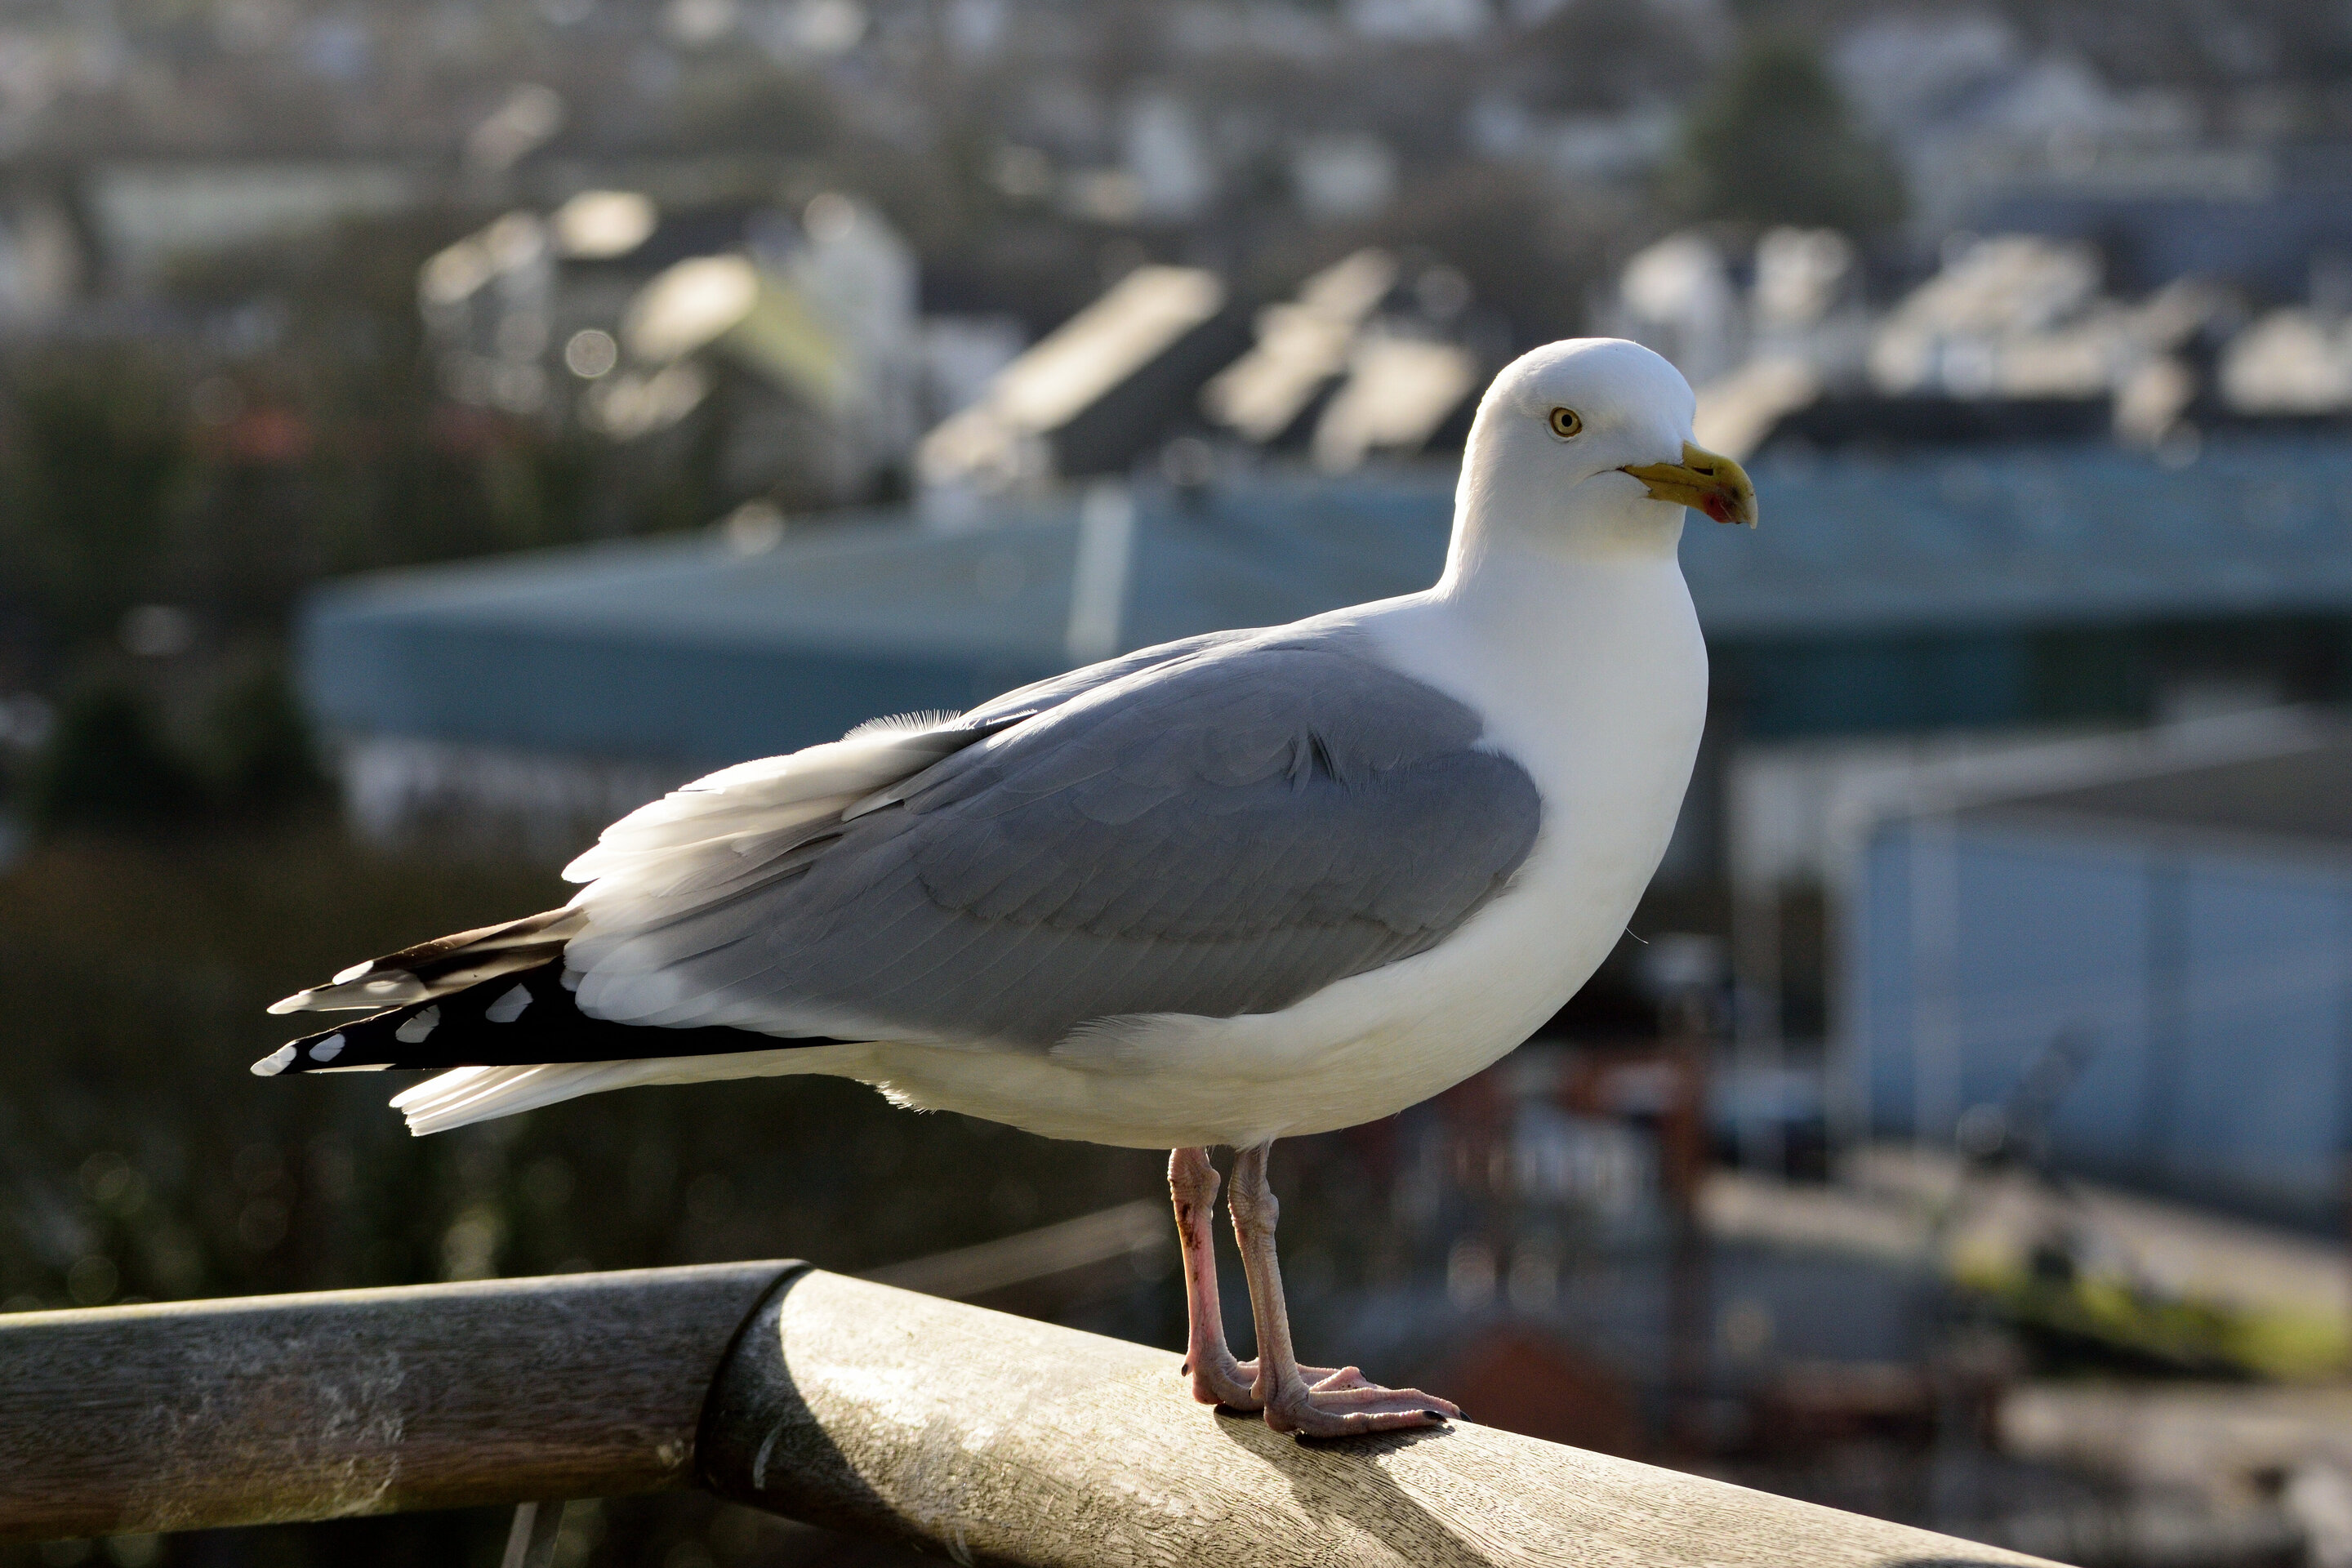 Seagulls favor food humans have handled